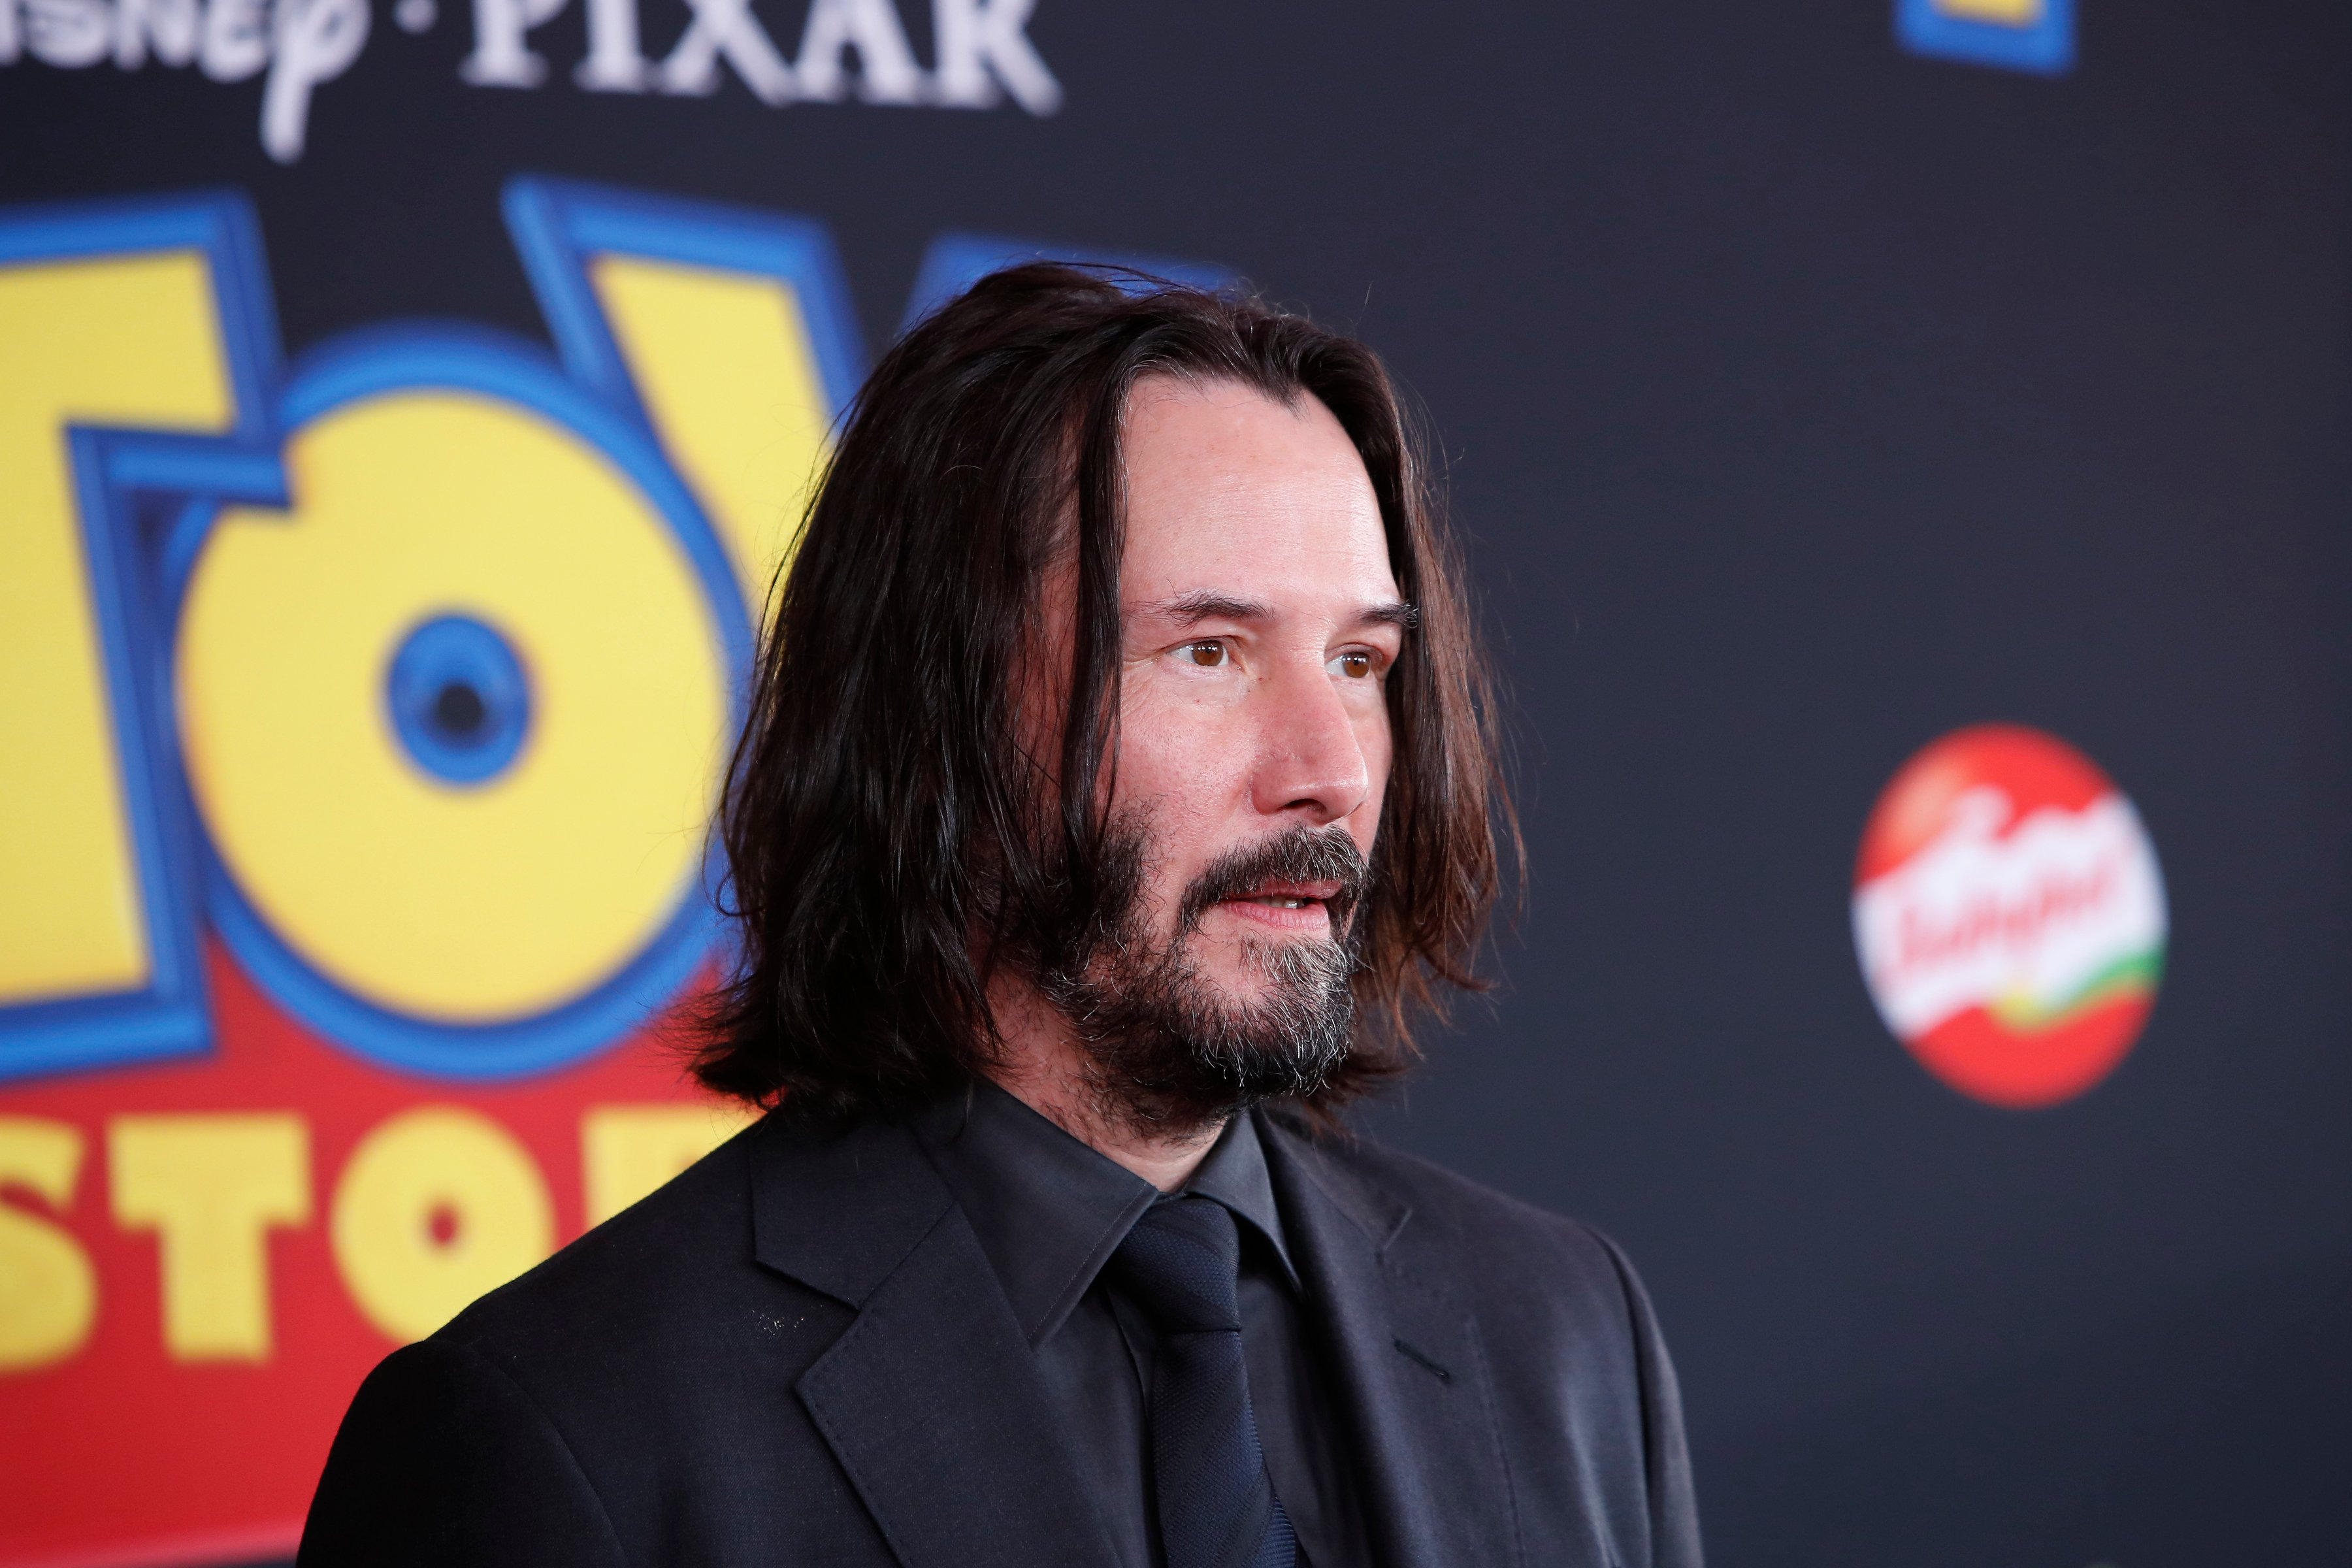 """Keanu Reeves attends the premiere of """"Toy Story 4"""" at Hollywood's El Capitan Theatre in June 2019 